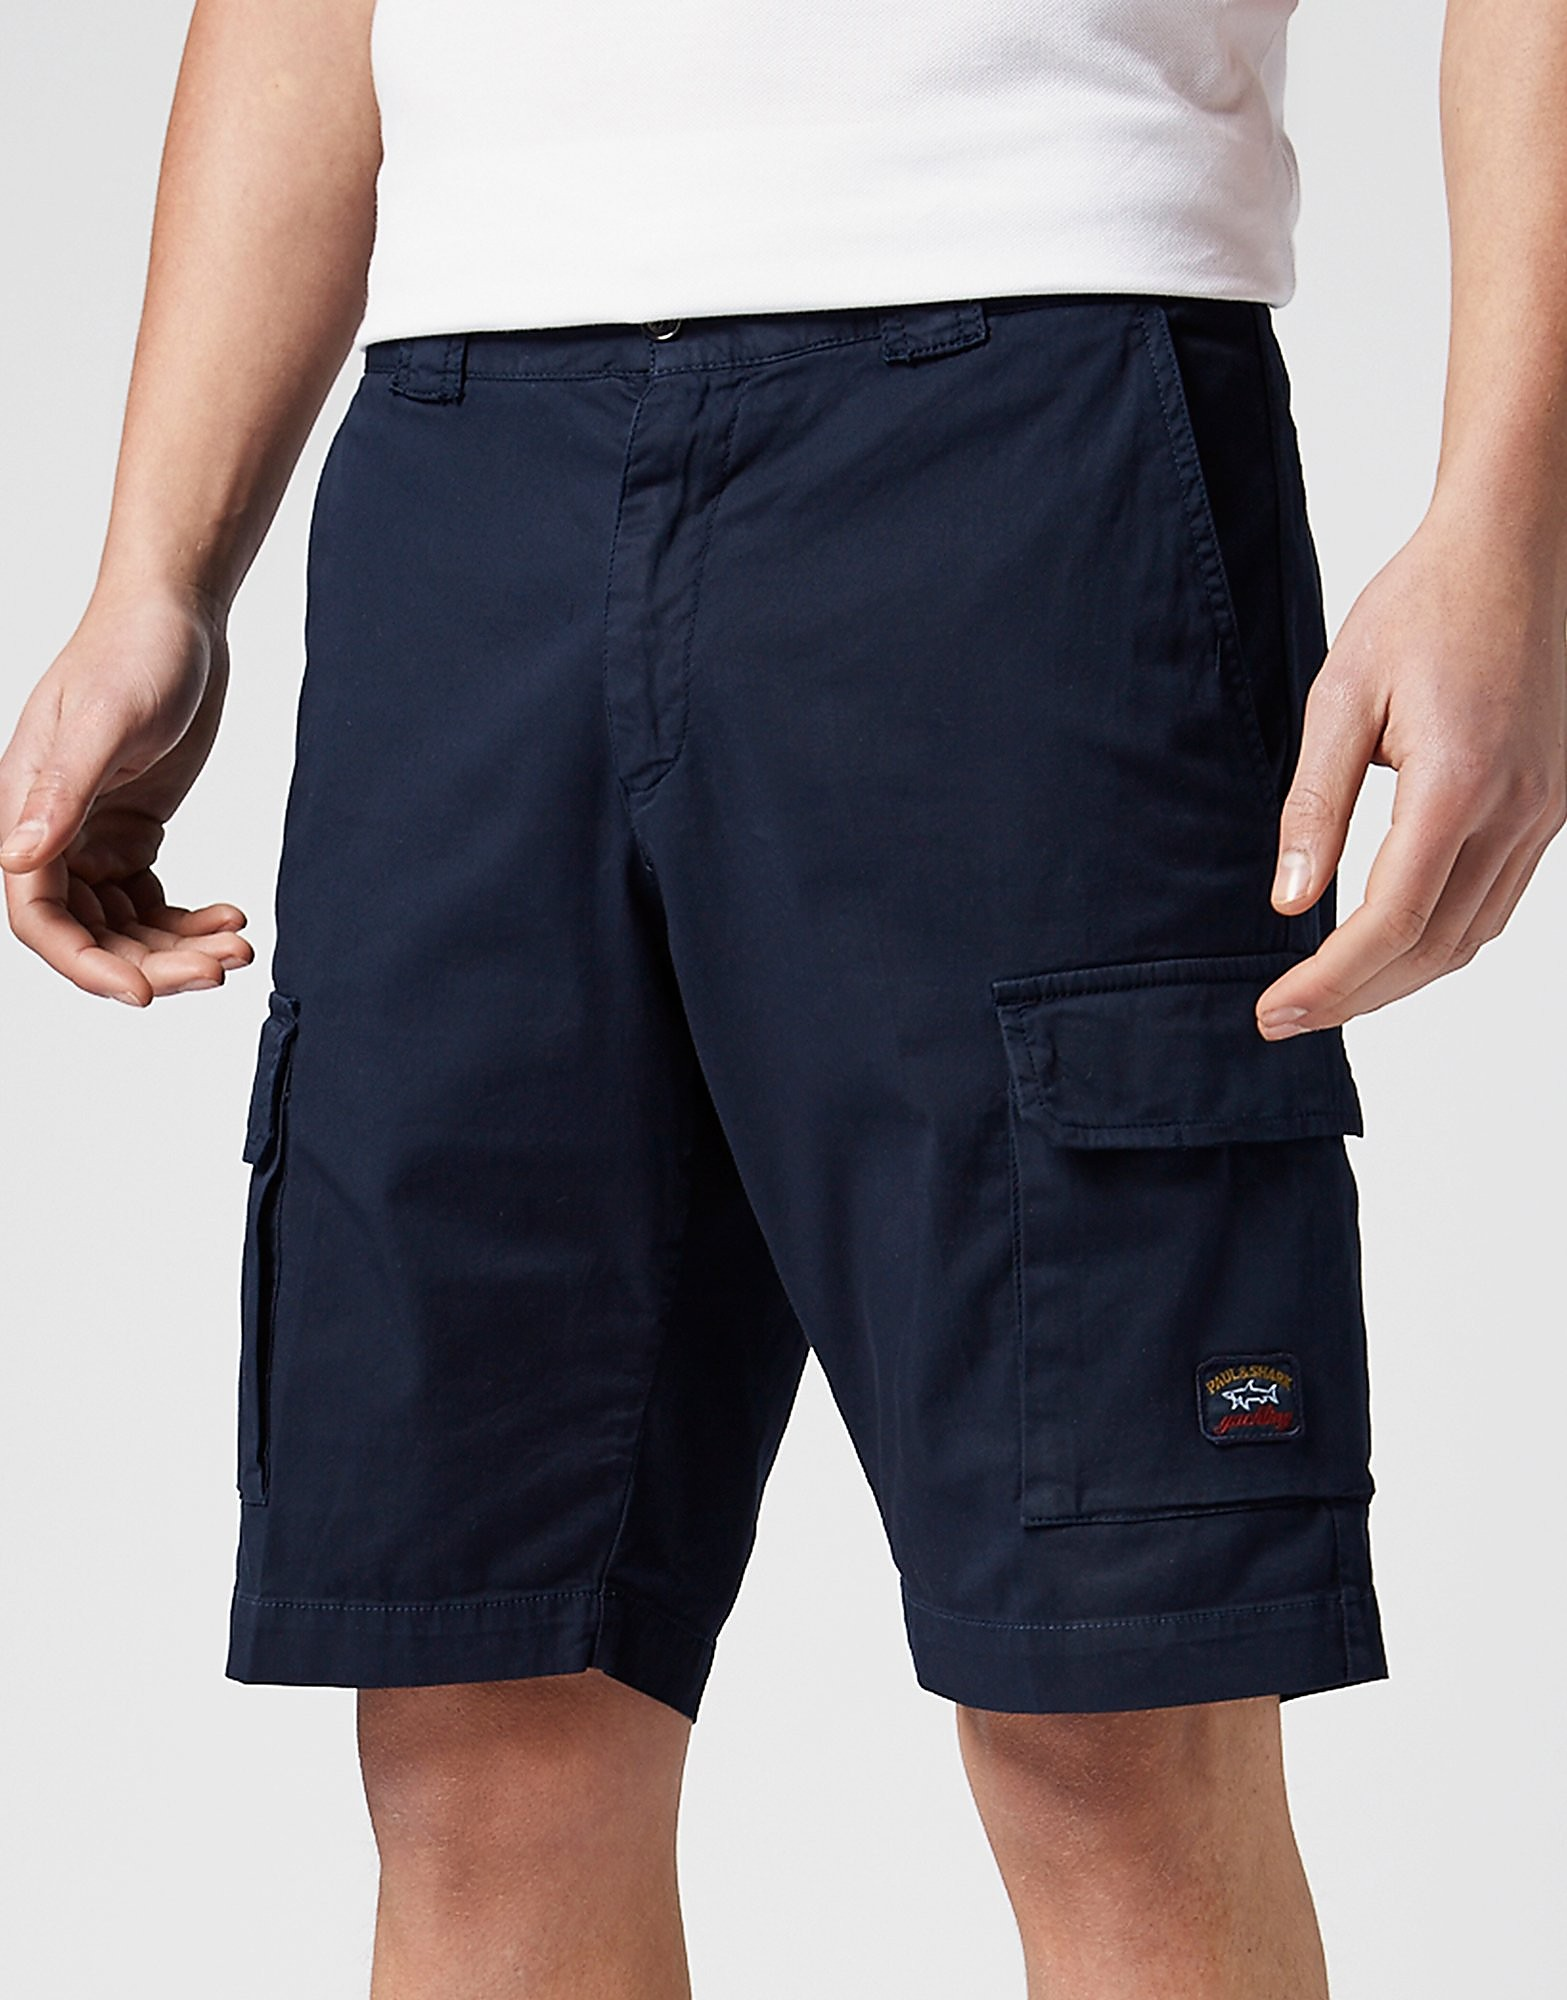 Paul and Shark Cargo Short - Exclusive